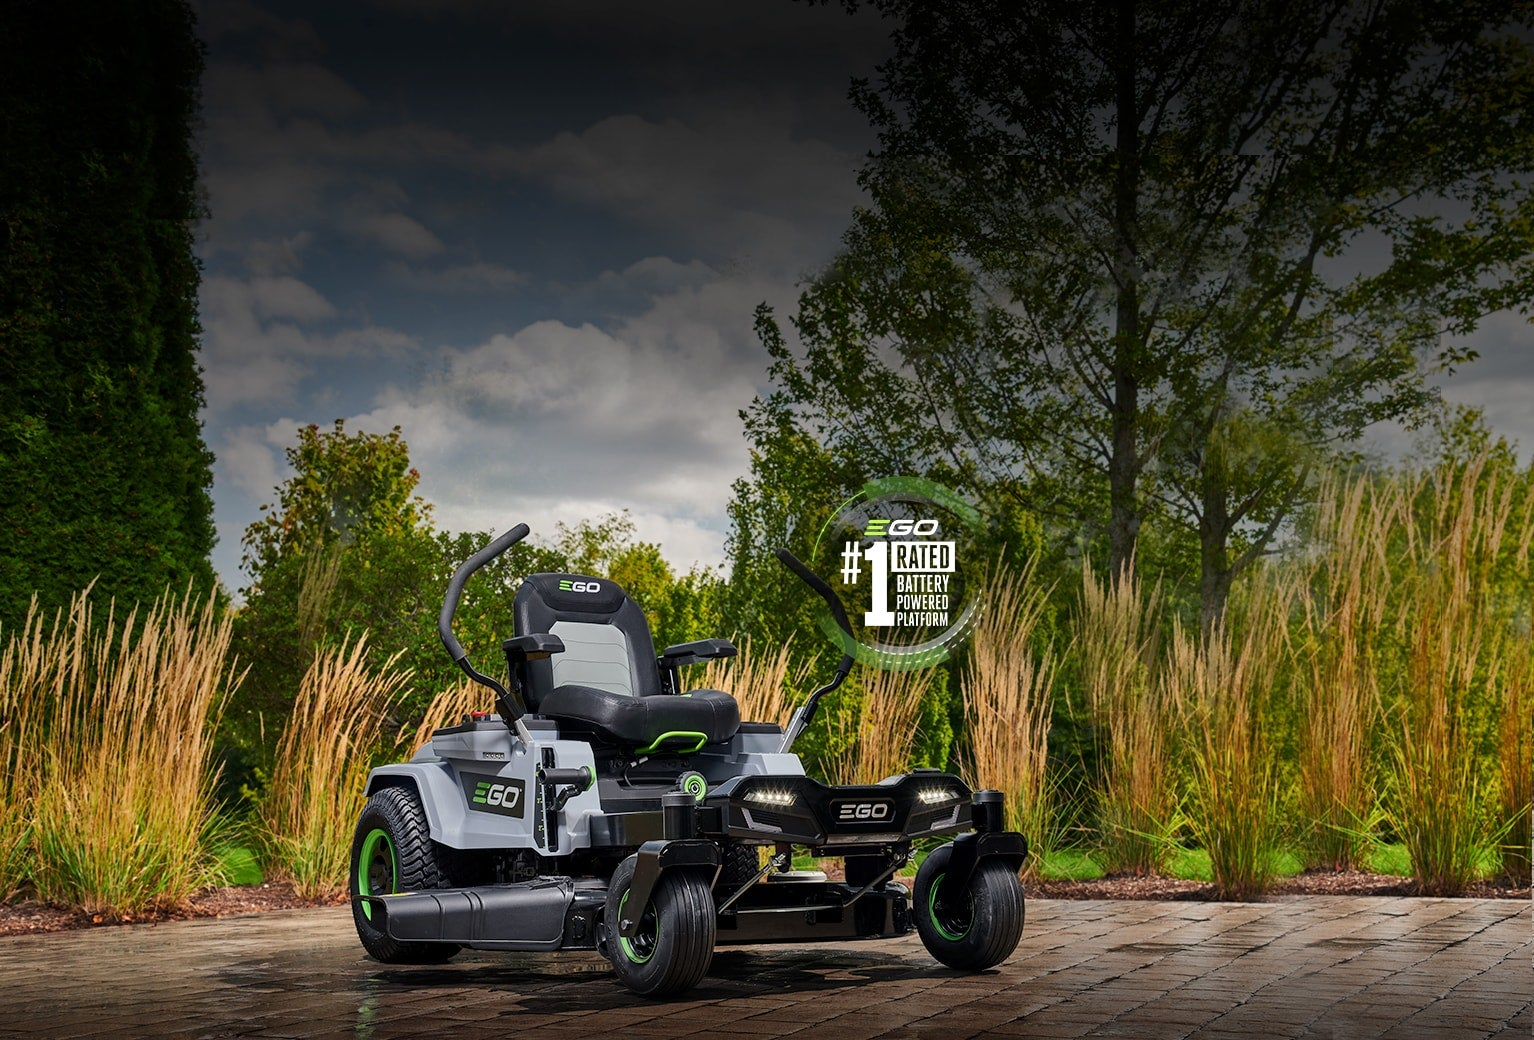 Z6 Riding Mower